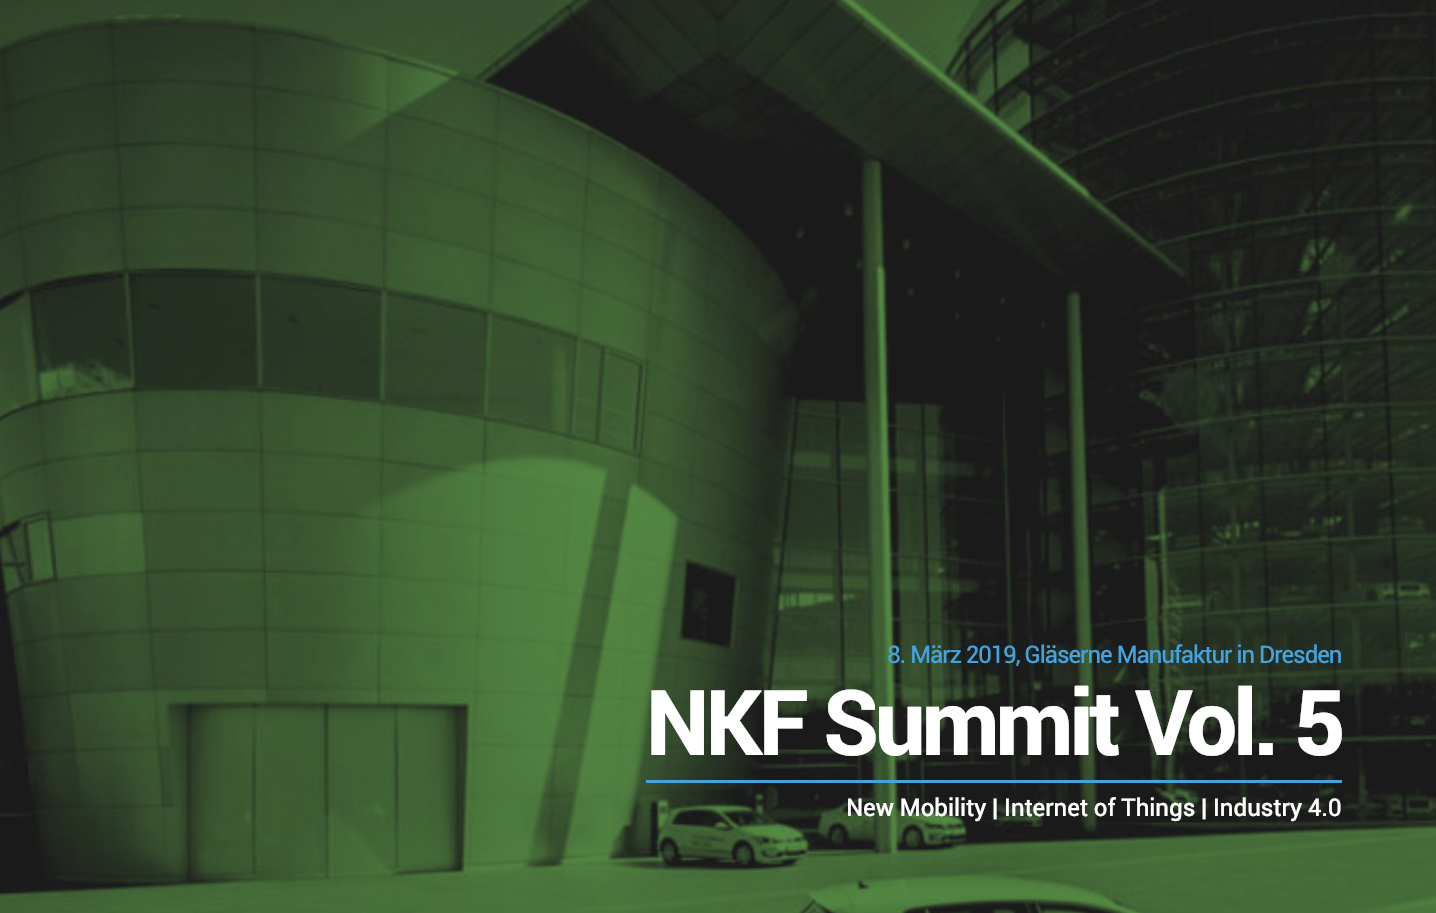 NKF Summit Vol. 5